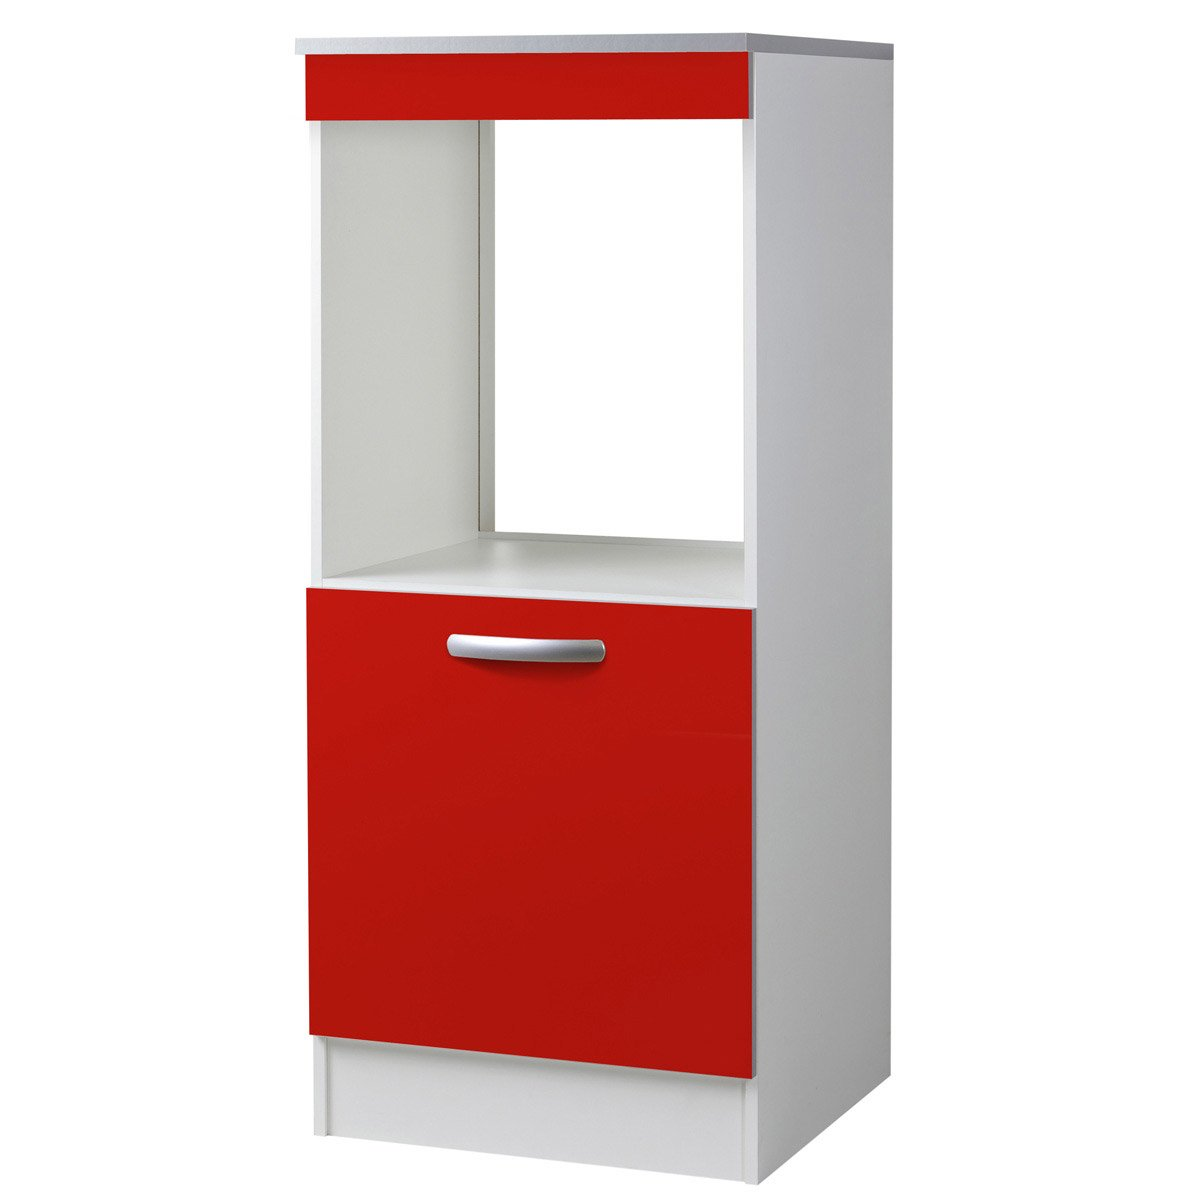 meuble de cuisine 1 2 colonne 1 porte rouge l60x p60cm leroy merlin. Black Bedroom Furniture Sets. Home Design Ideas